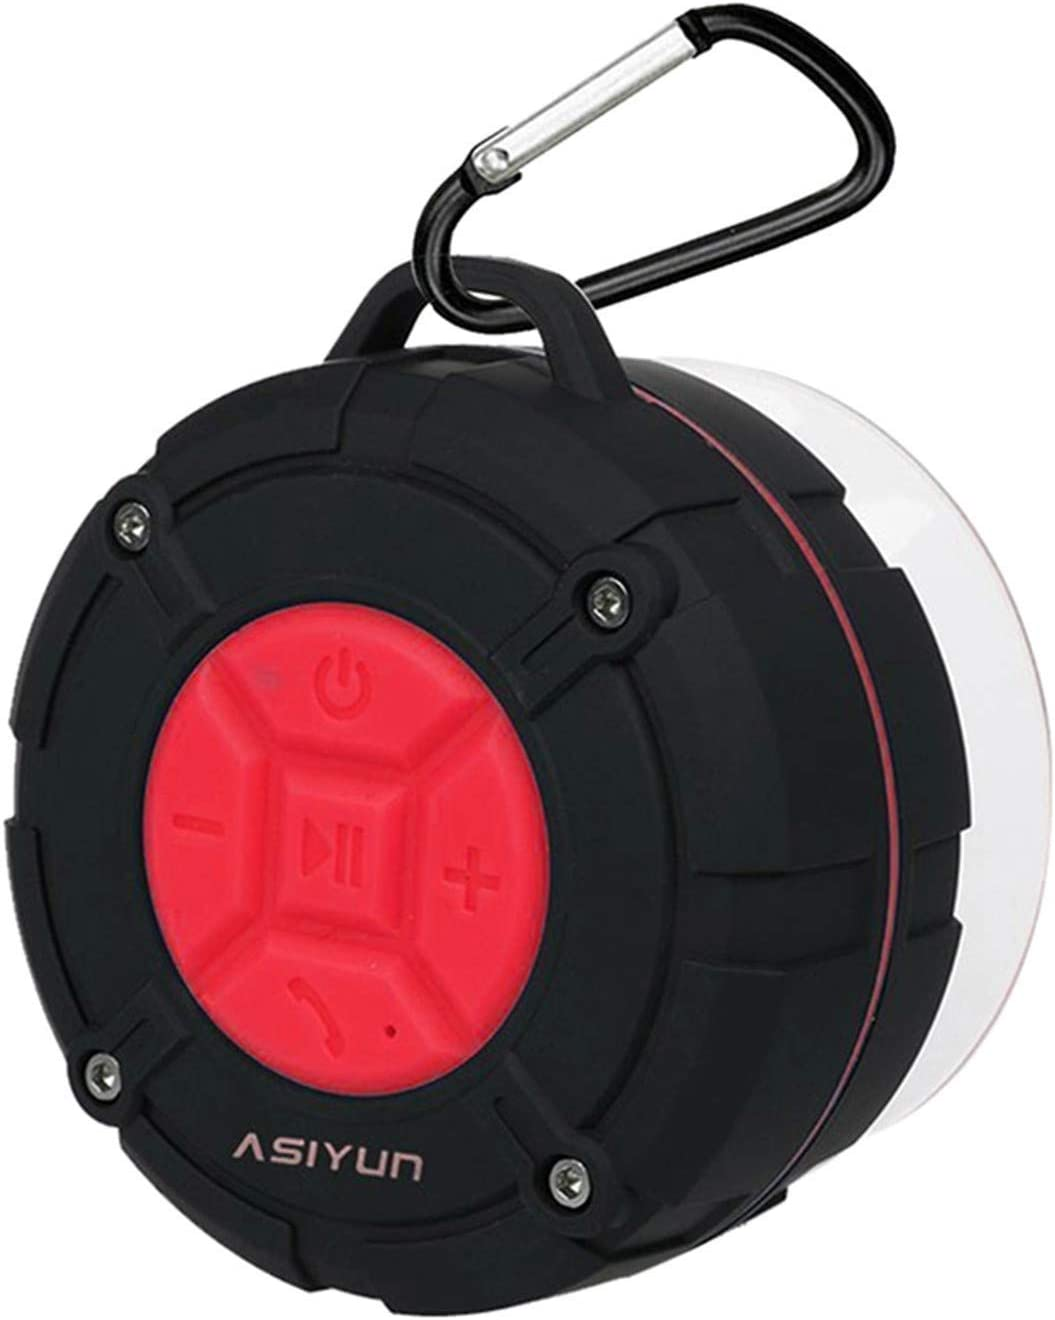 ASIYUN Shower Speaker, IPX7 Waterproof Bluetooth Speaker, Loud HD Sound, Portable Wireless Speaker with Suction Cup & Sturdy Hook, Built-in Mic, for Shower, Pool, Beach, Outdoor(Red)